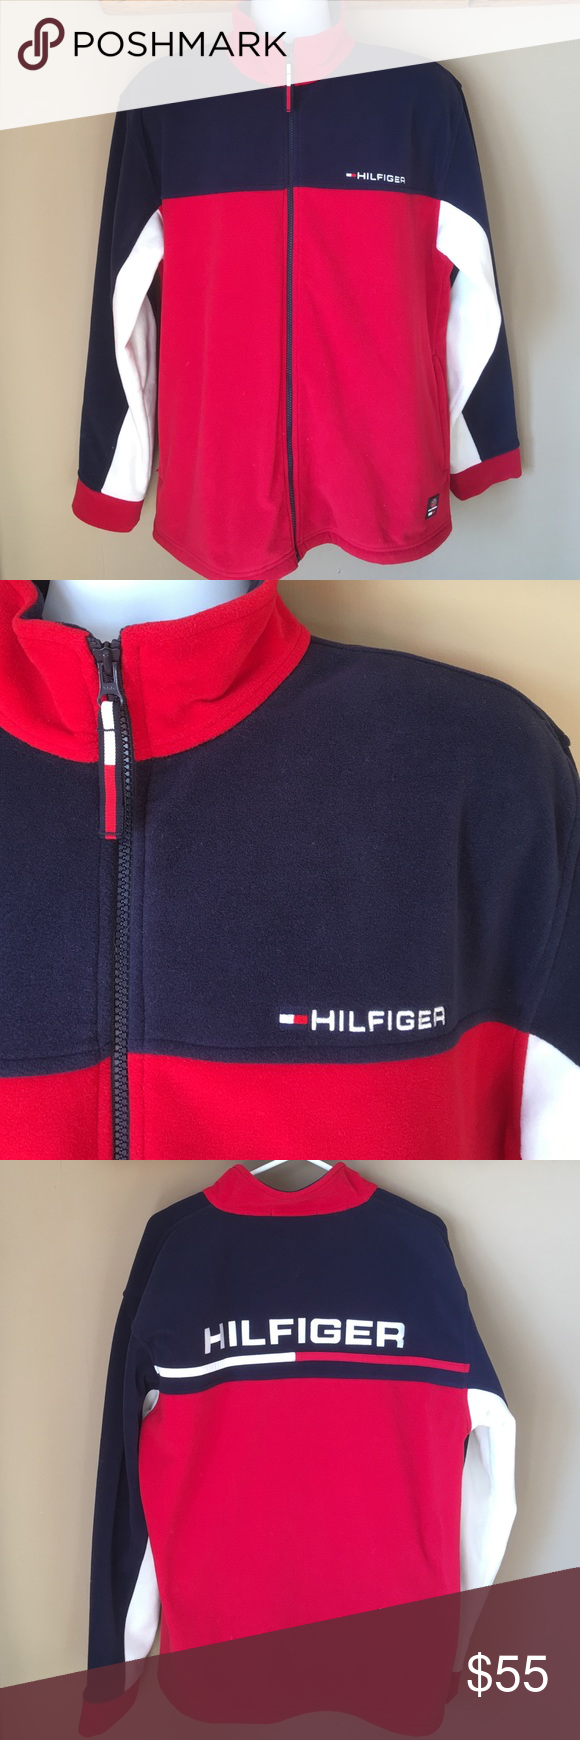 Tommy hilfiger menus red white blue fleece jacket tommy hilfiger